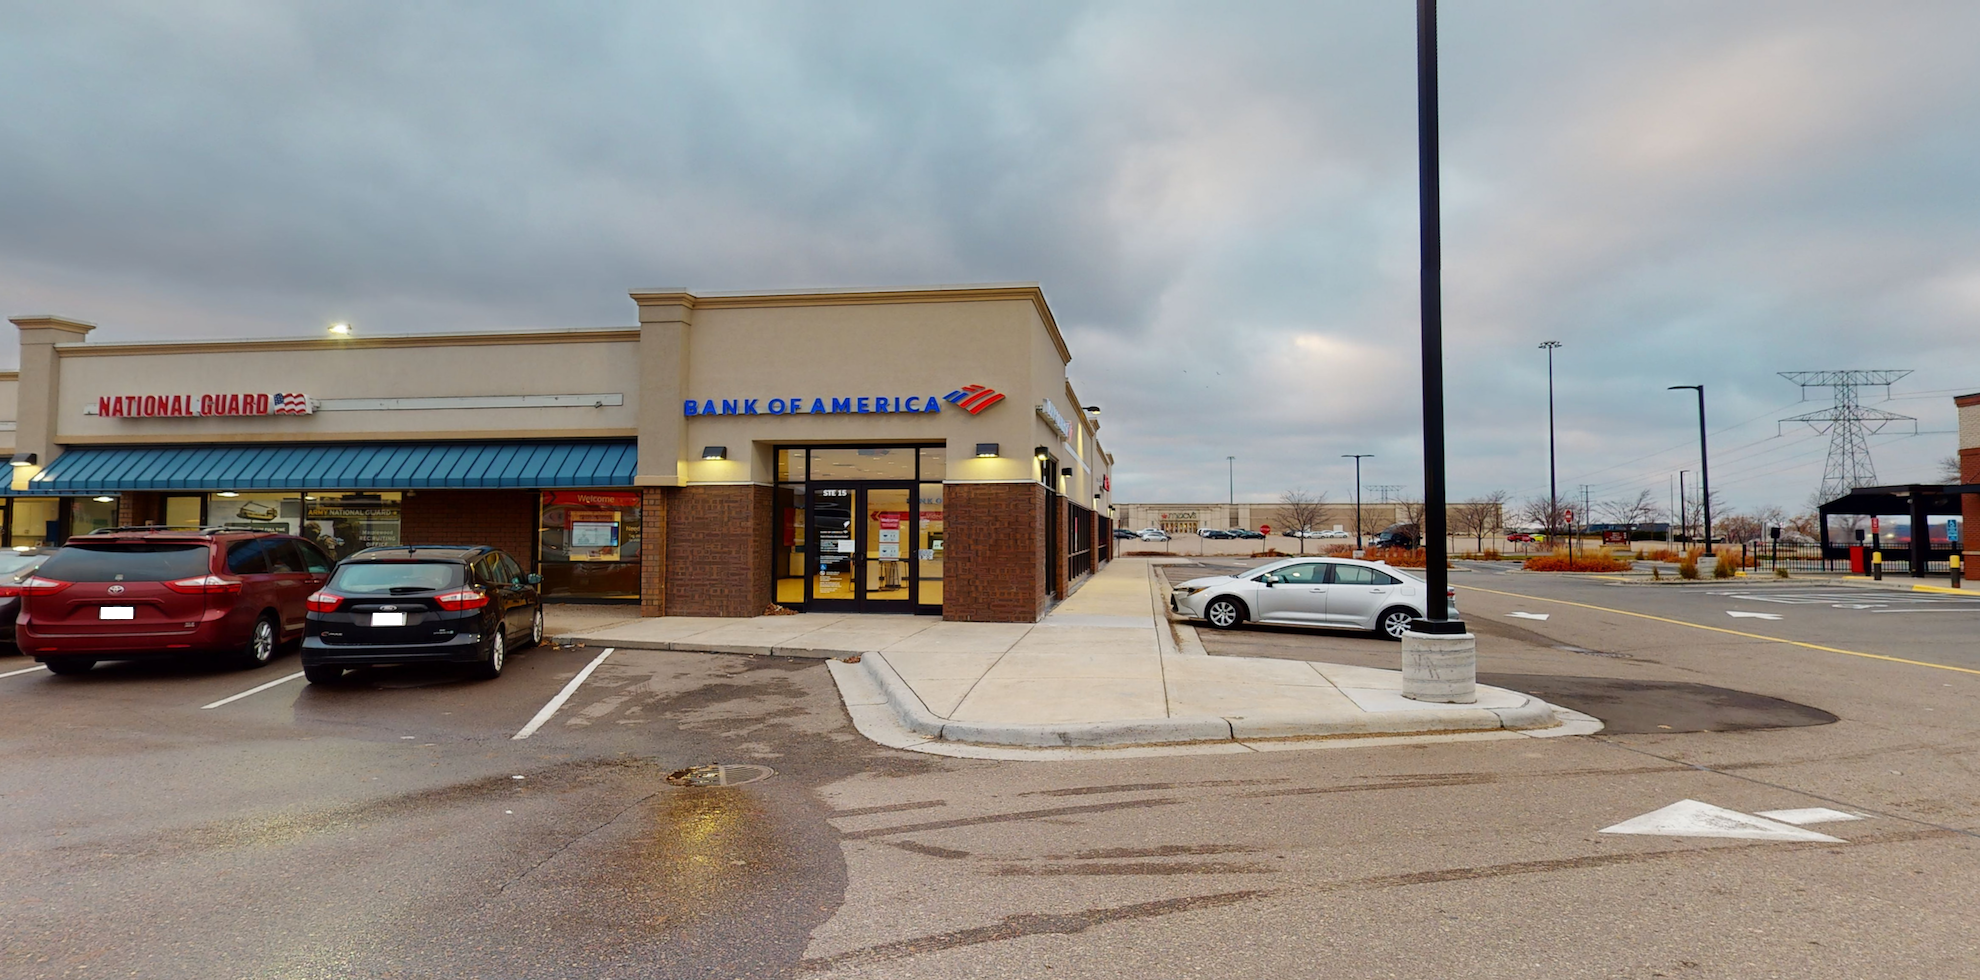 Bank of America Advanced Center with walk-up ATM   3035 White Bear Ave N STE 15, Maplewood, MN 55109